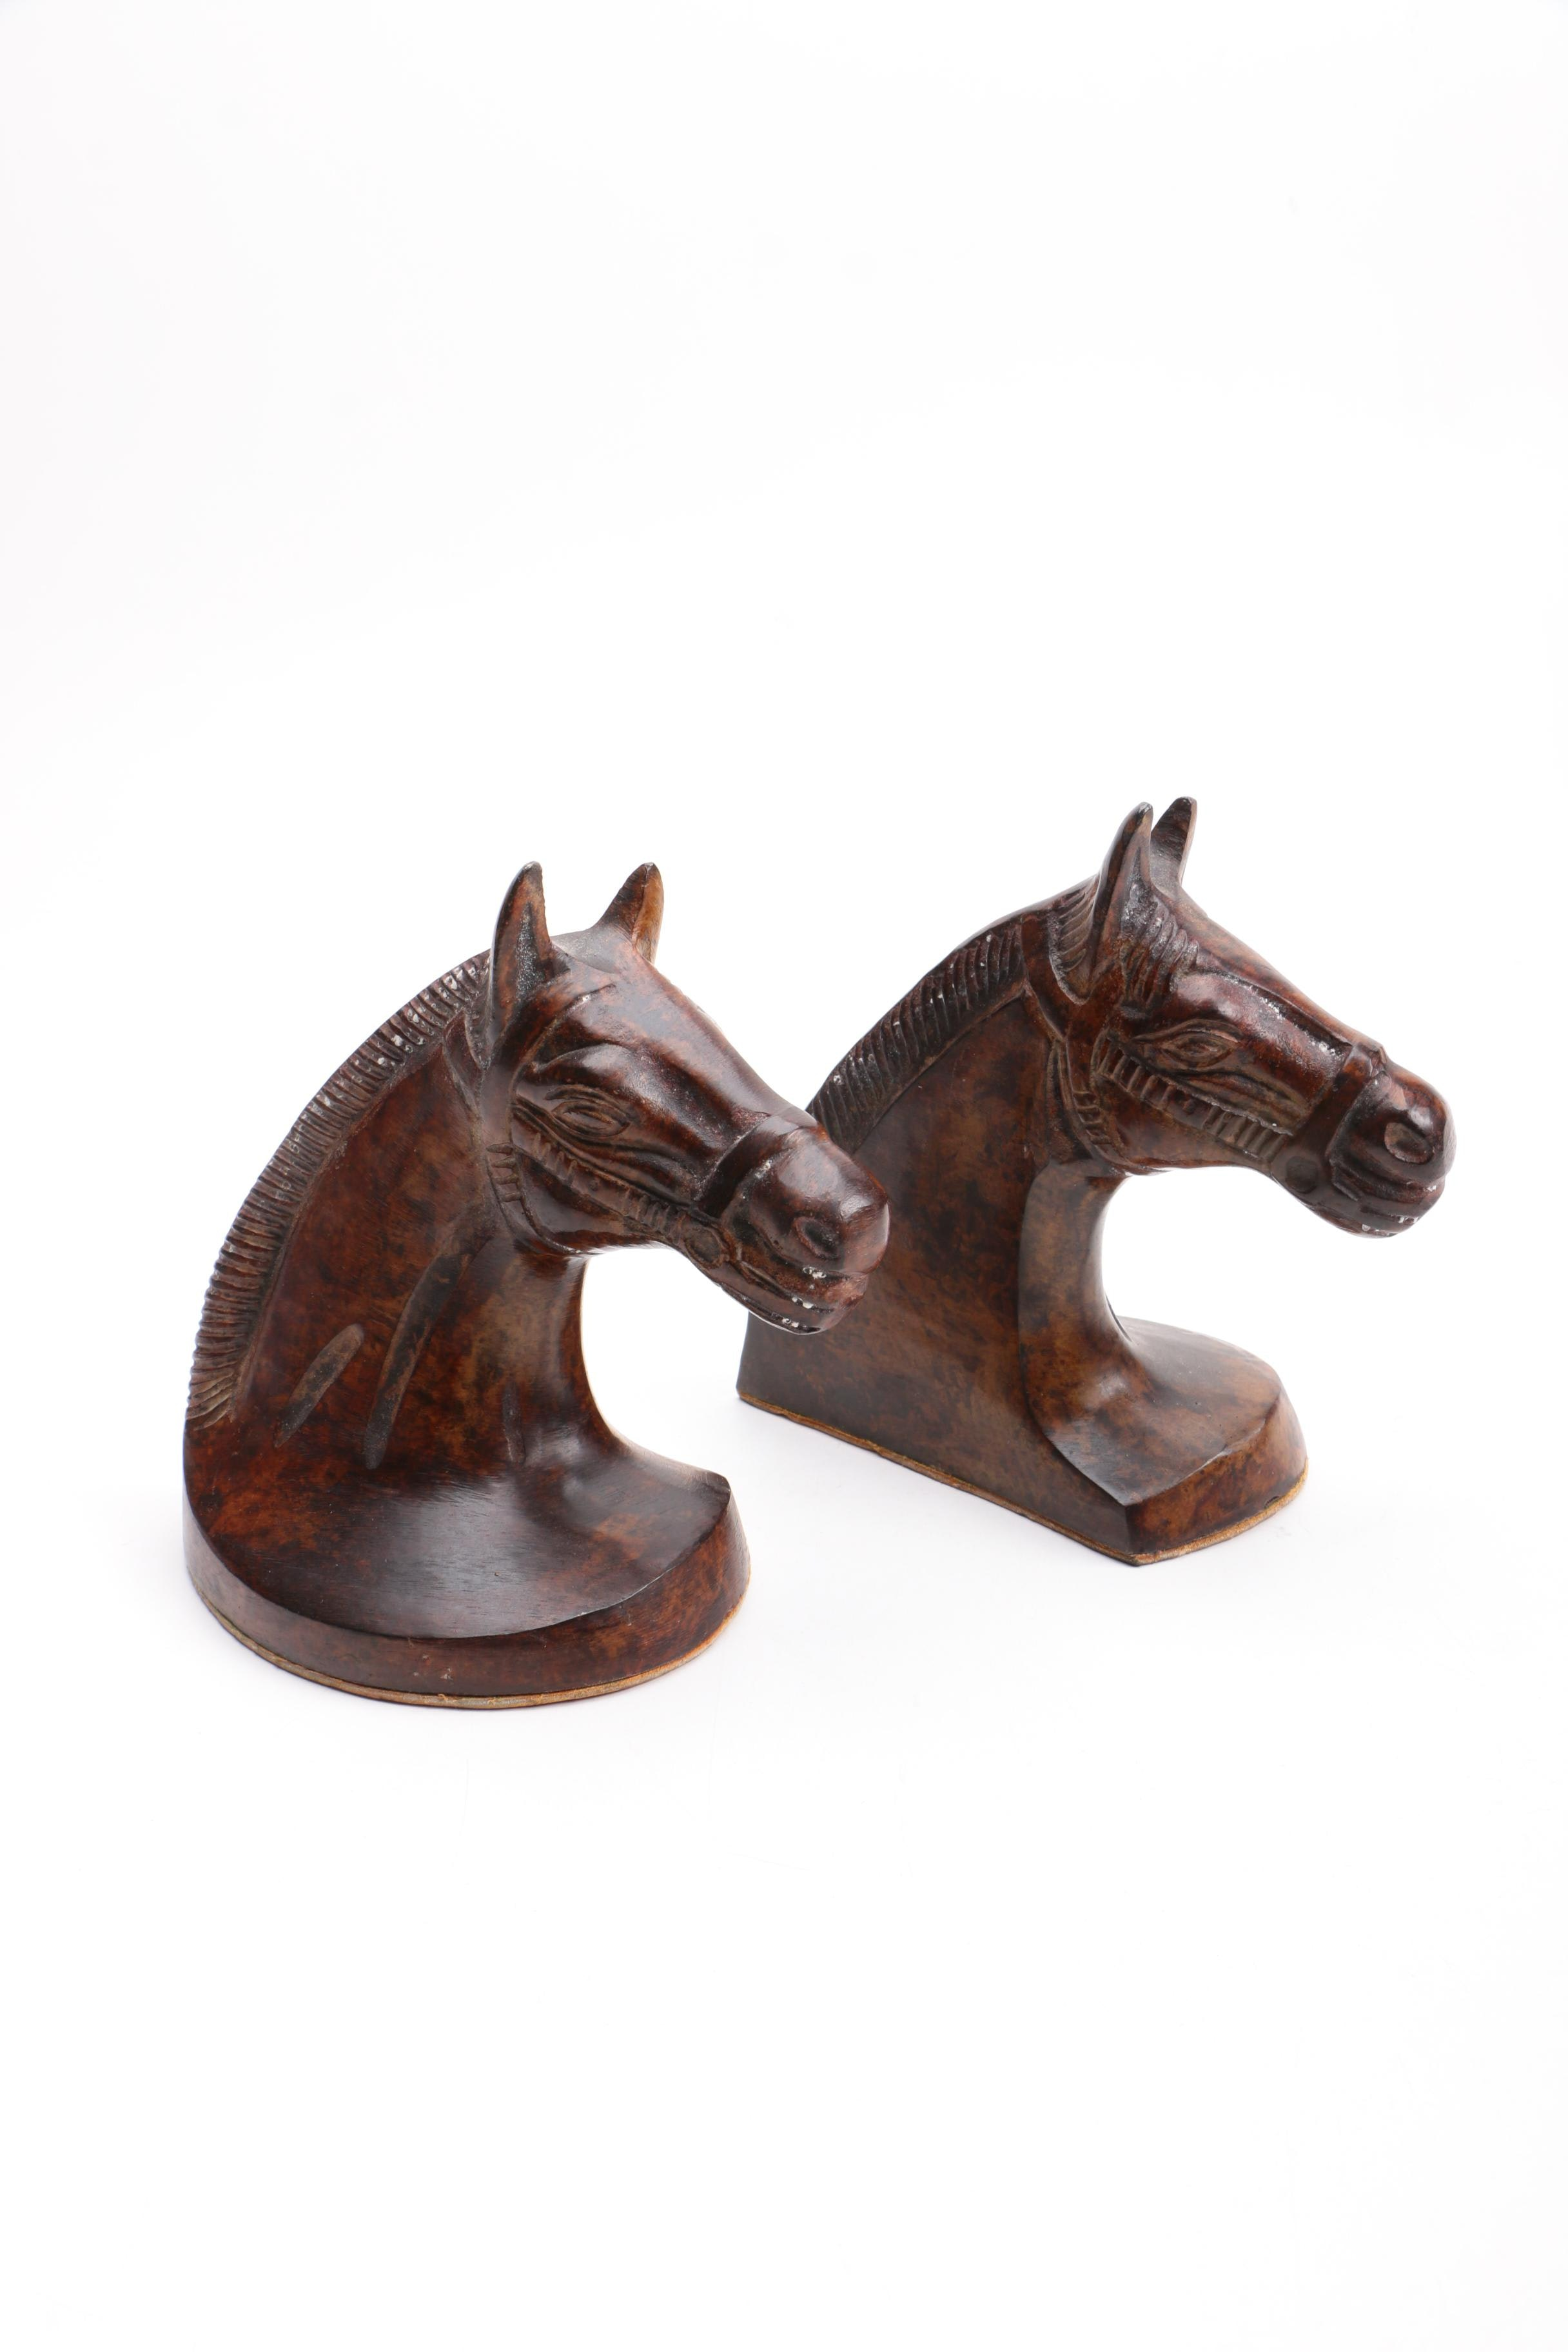 Two Metal Horsehead Bookends